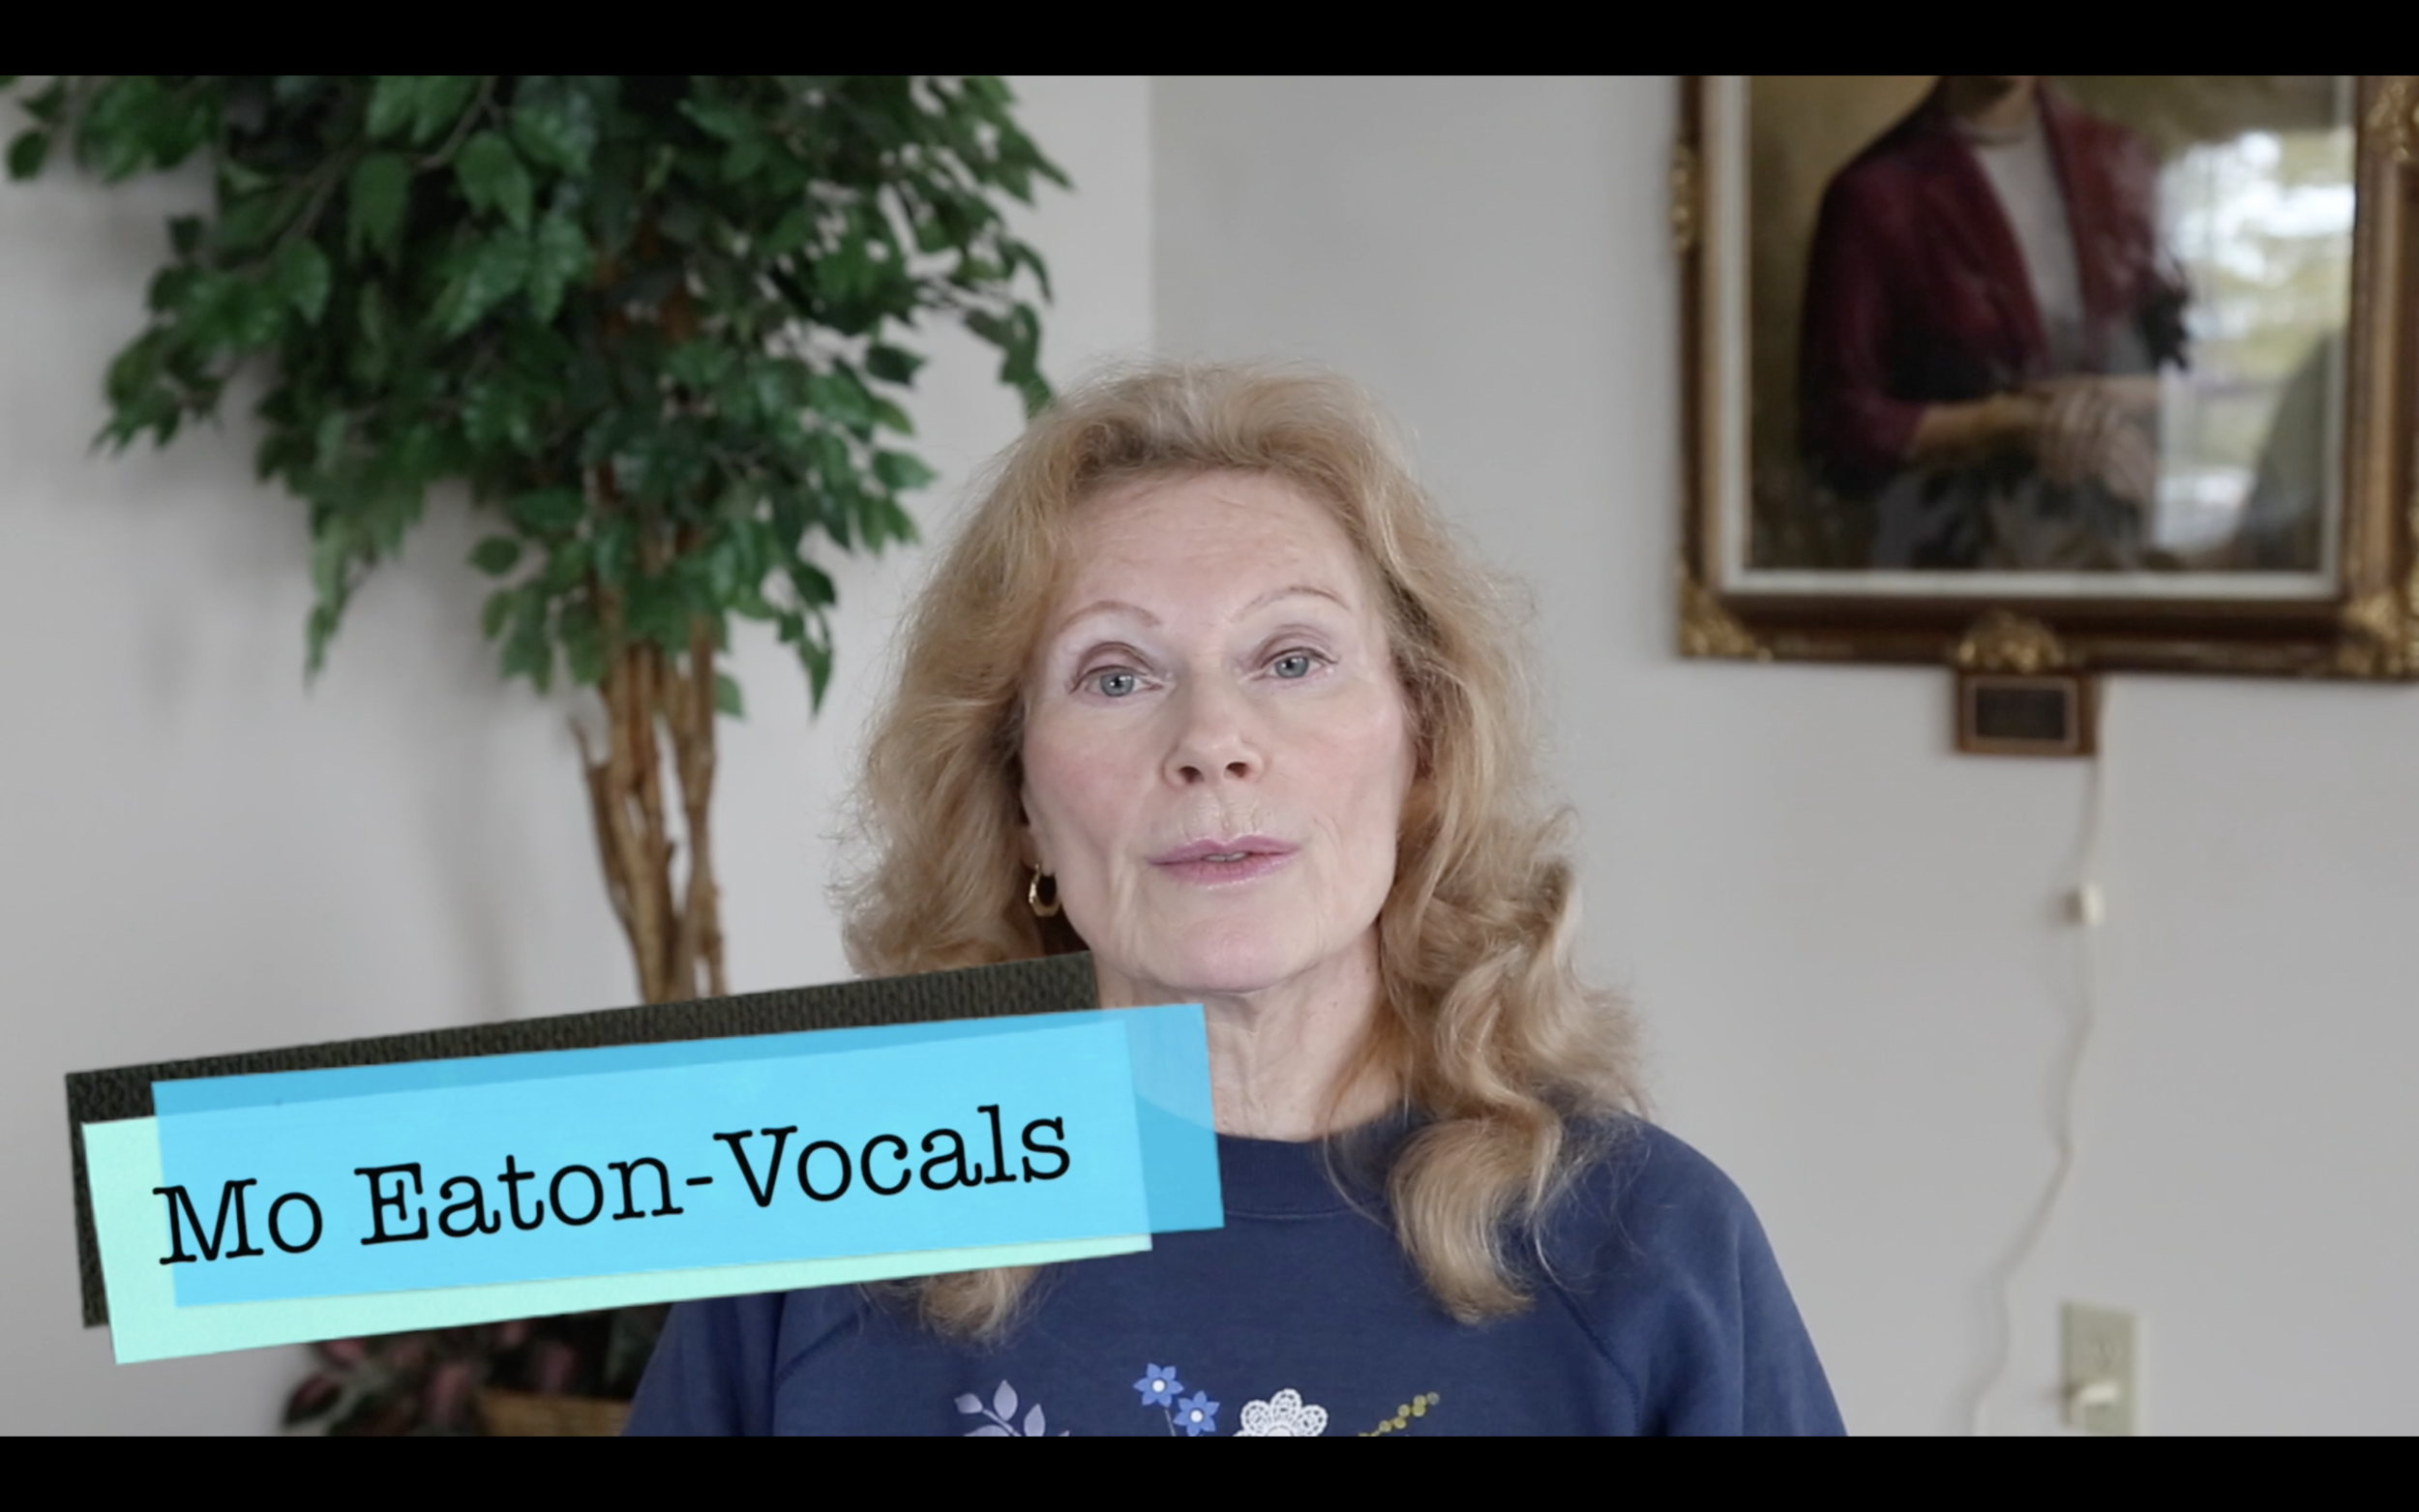 Moe Eaton - Click this image to hear from Vocalist Mo Eaton.